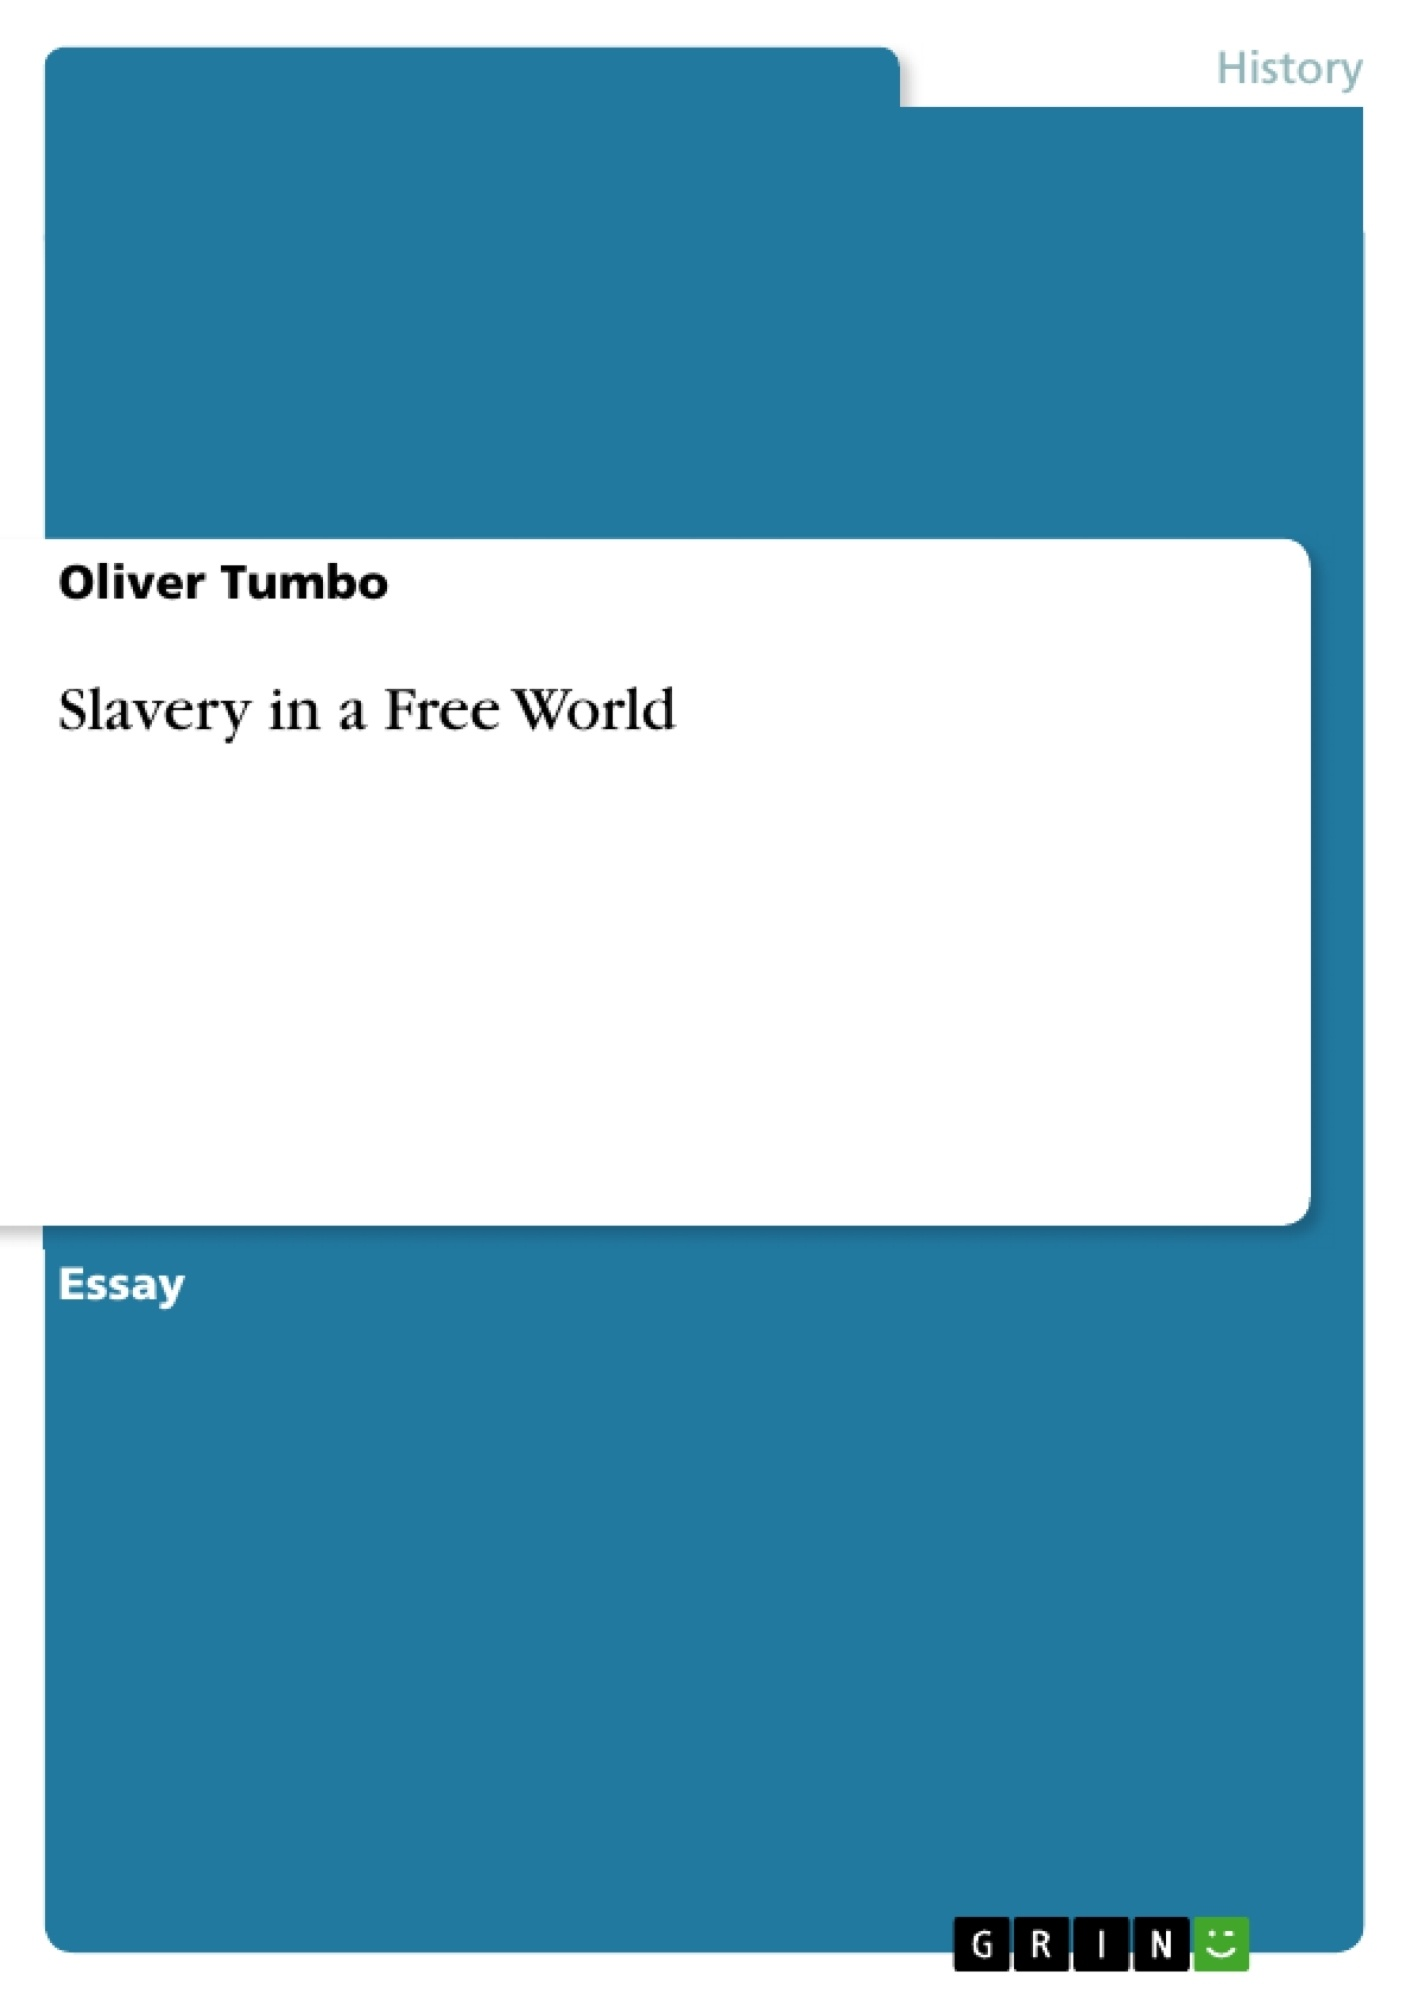 Title: Slavery in a Free World